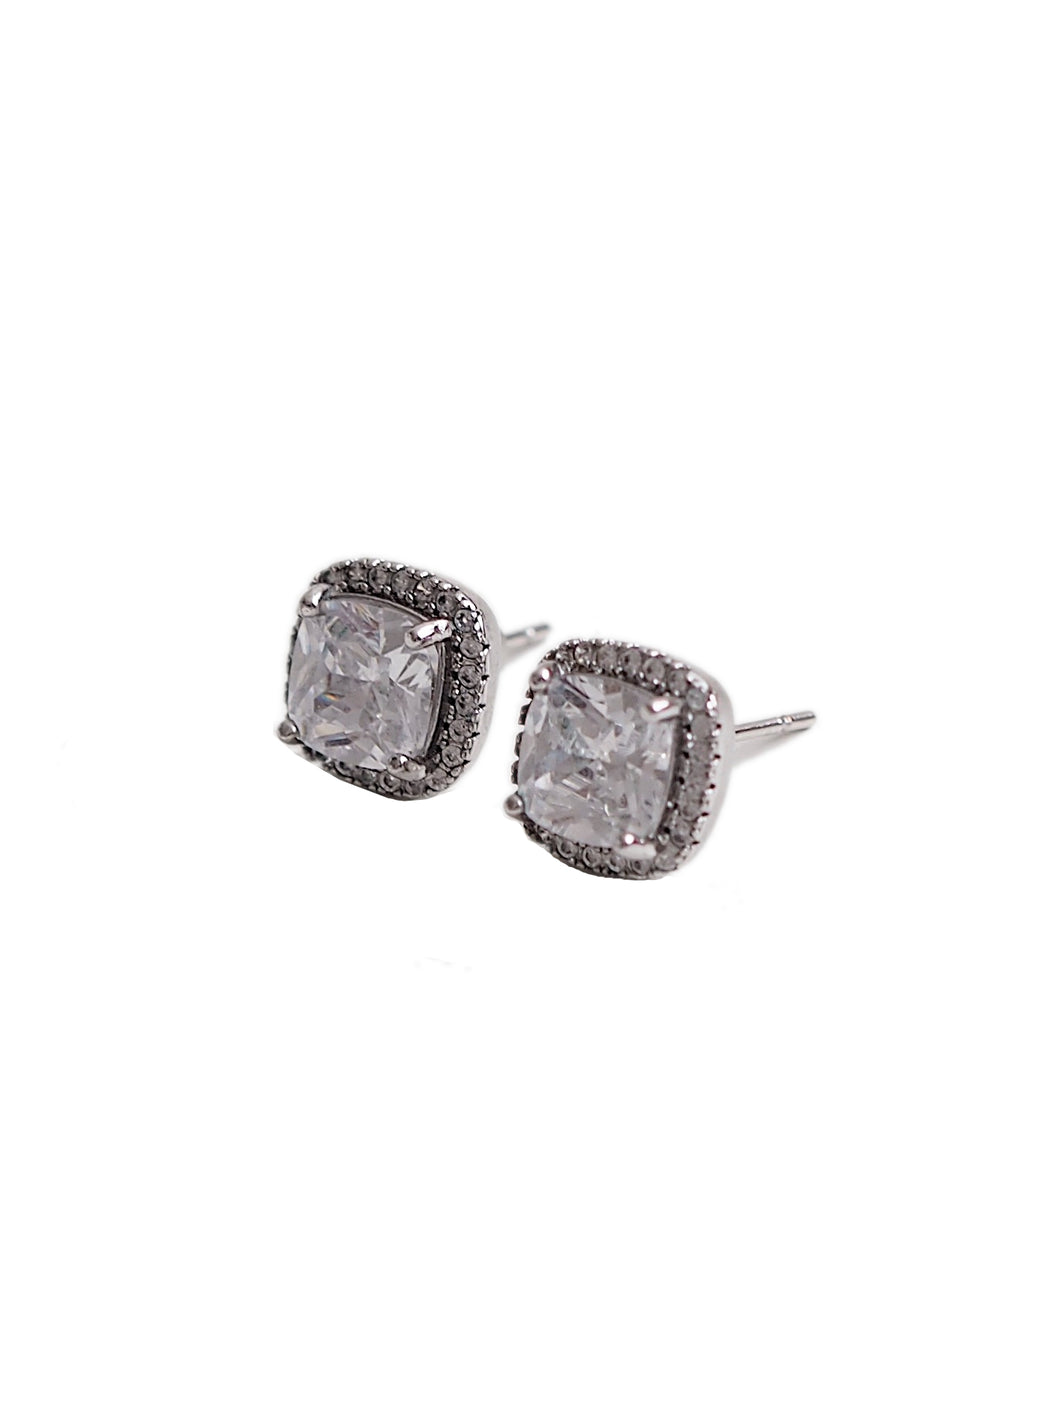 SILVER CUSHIONED CZ STUD EARRINGS